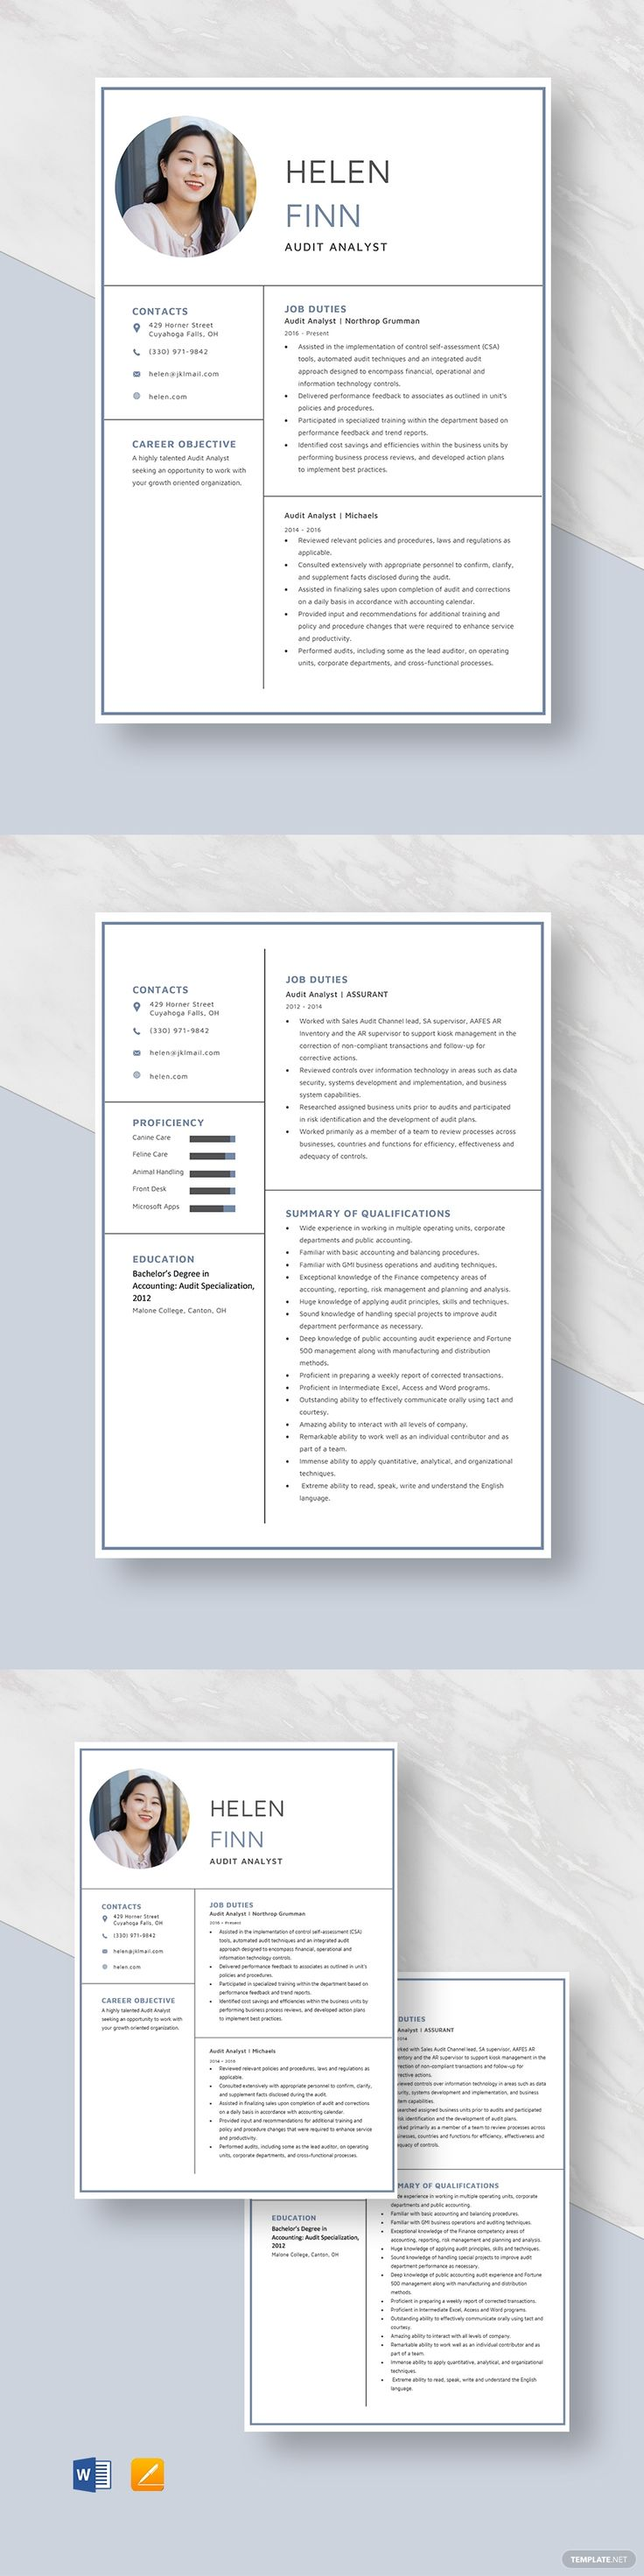 Audit Analyst Resume Template AD, , Sponsored, Analyst